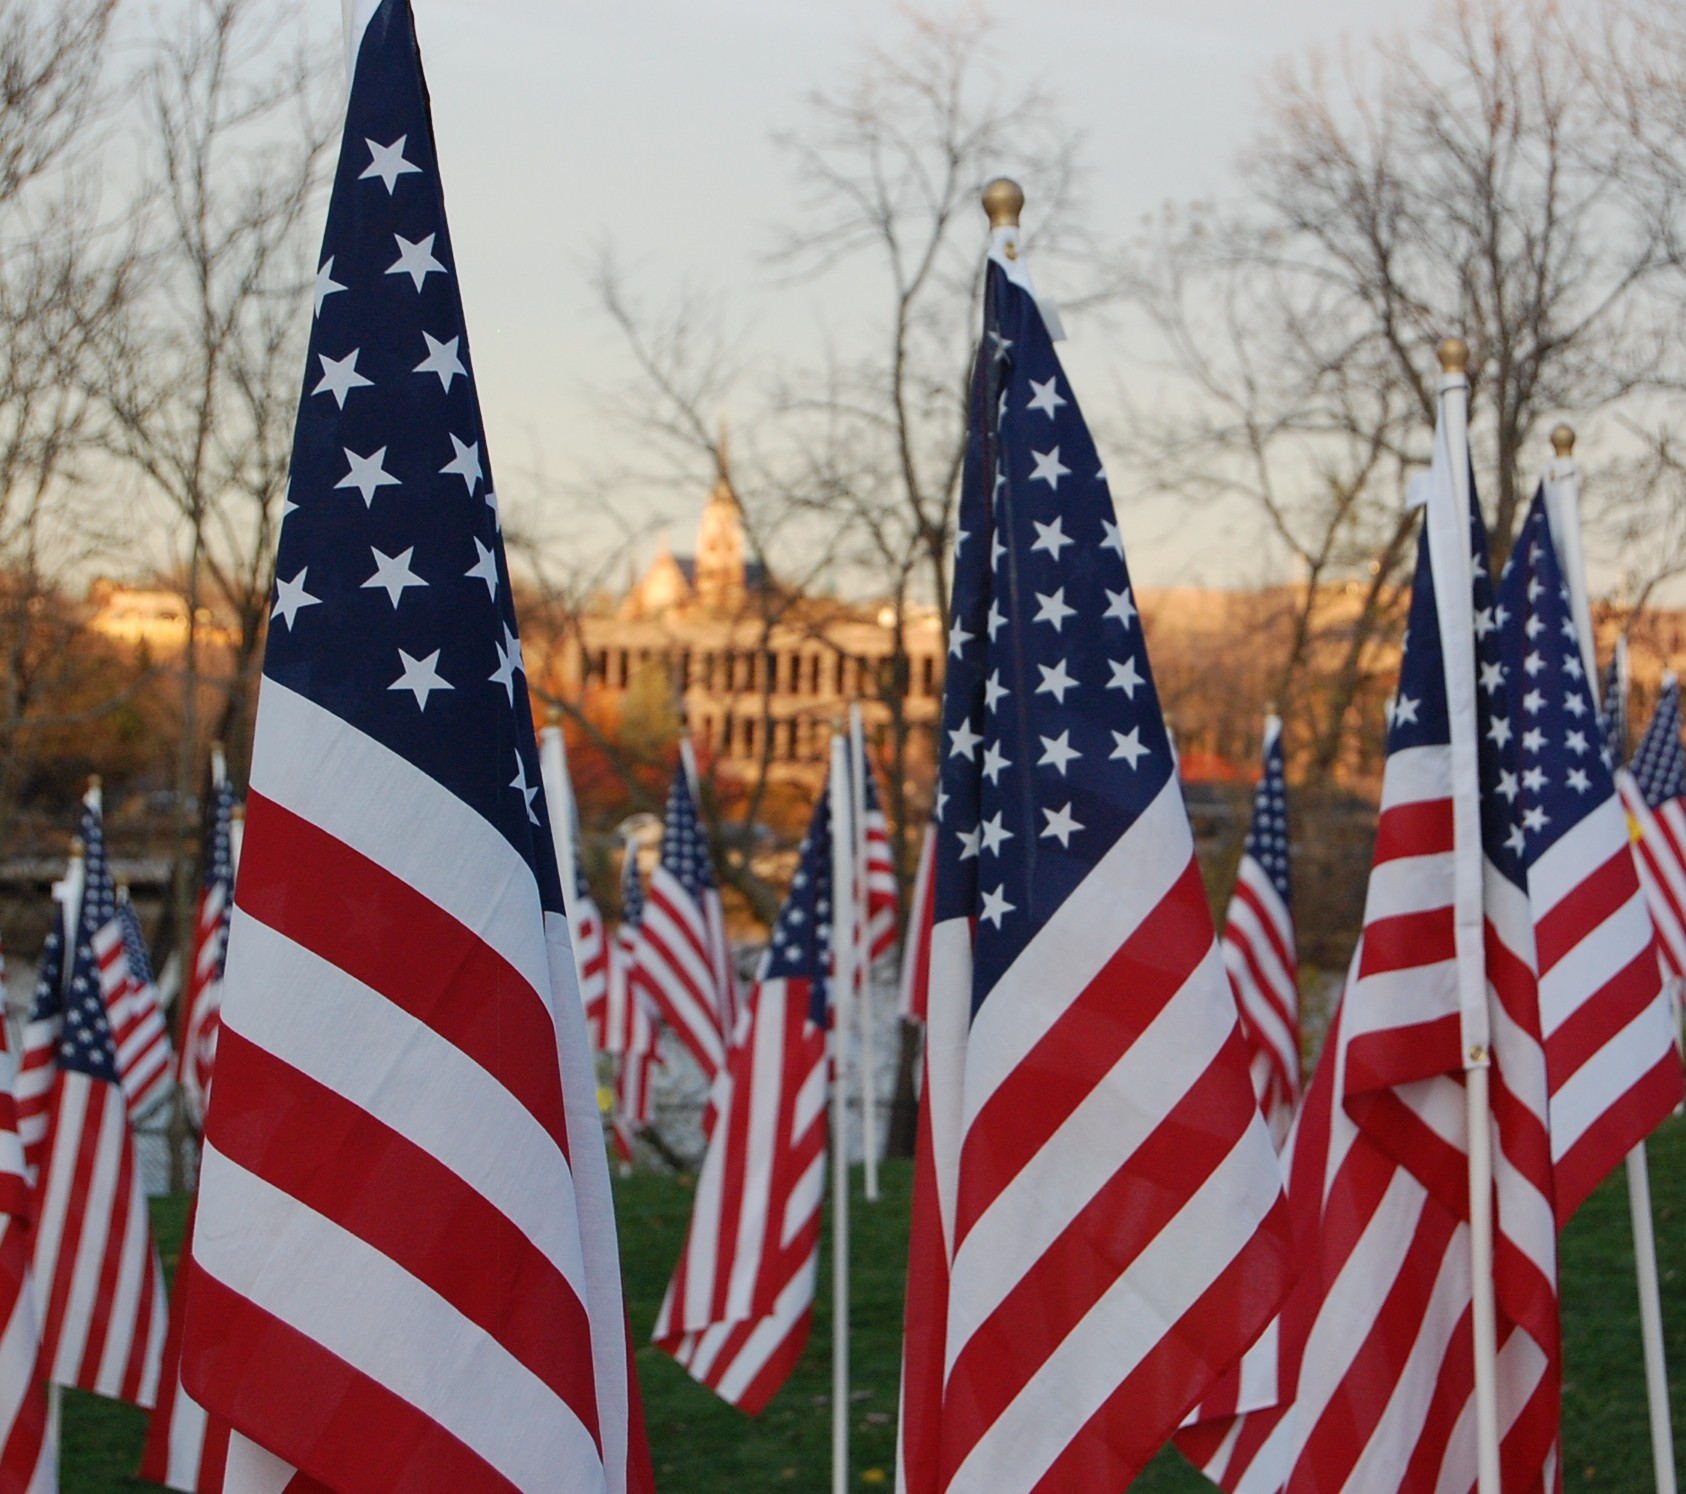 Flags on Rotary Hill